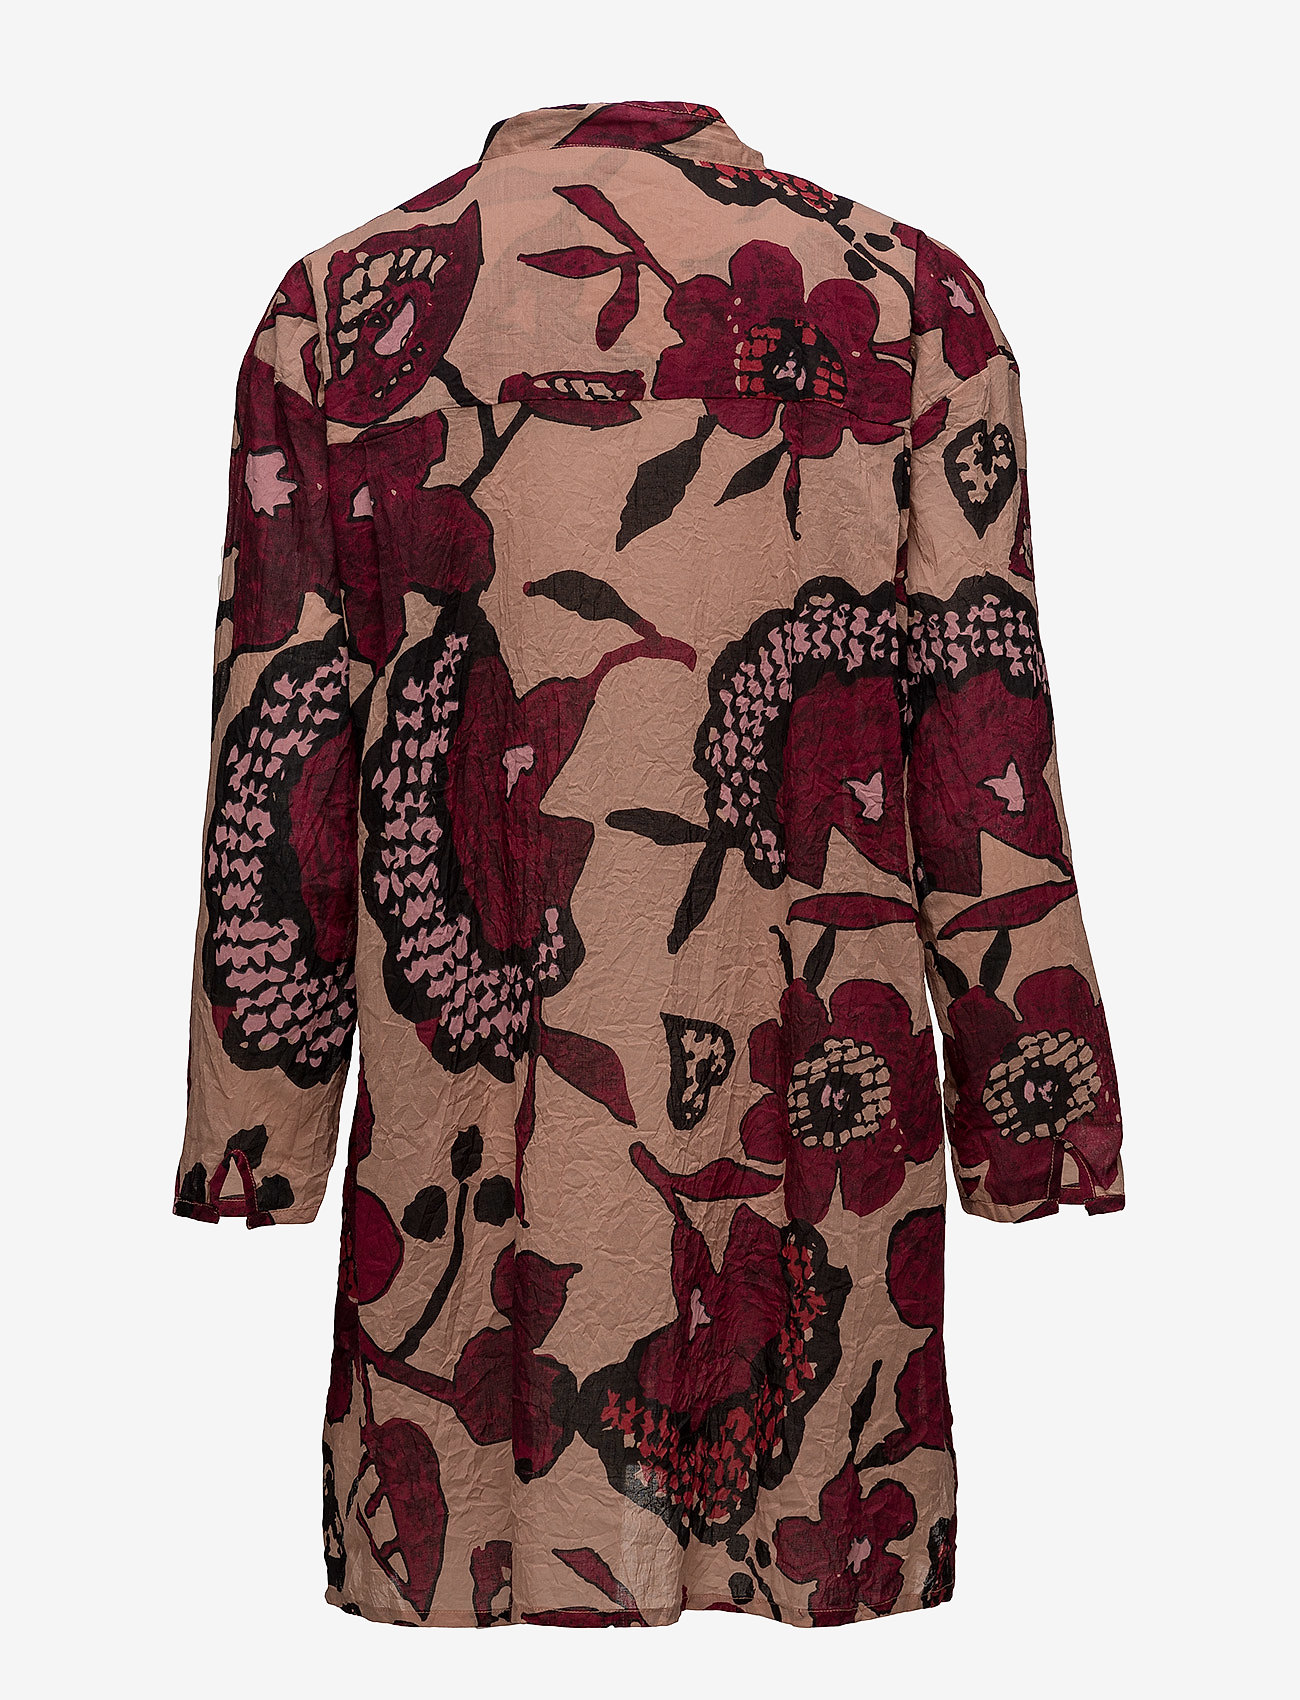 Masai - Ineo blouse - blouses à manches longues - dusty rose org